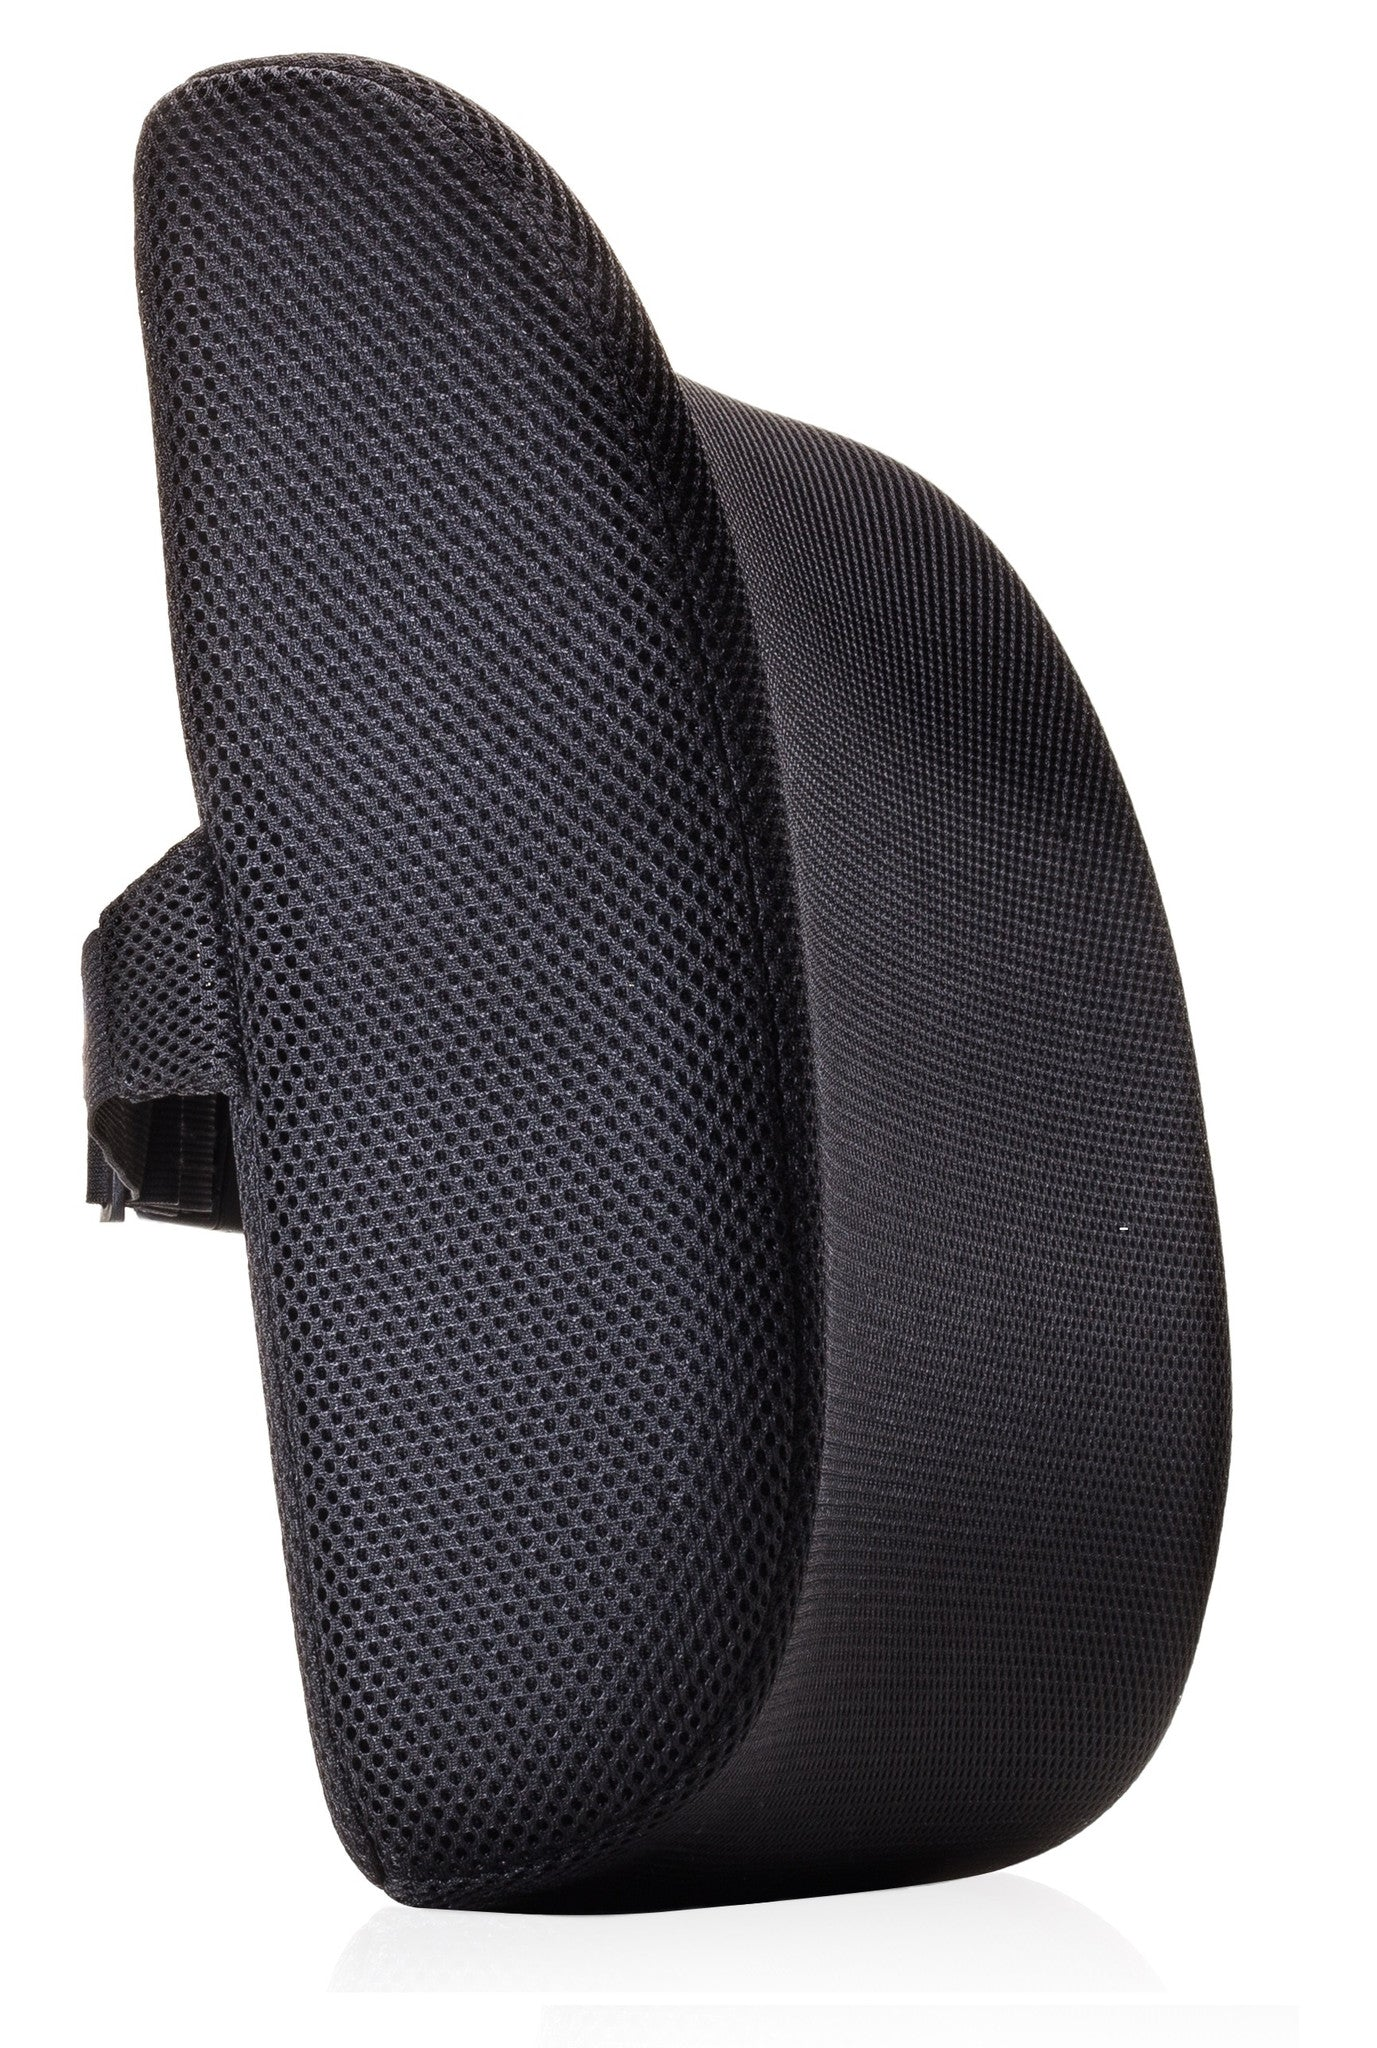 Premium Lumbar Support Back Pillow Cushion by MemorySoft (Black)